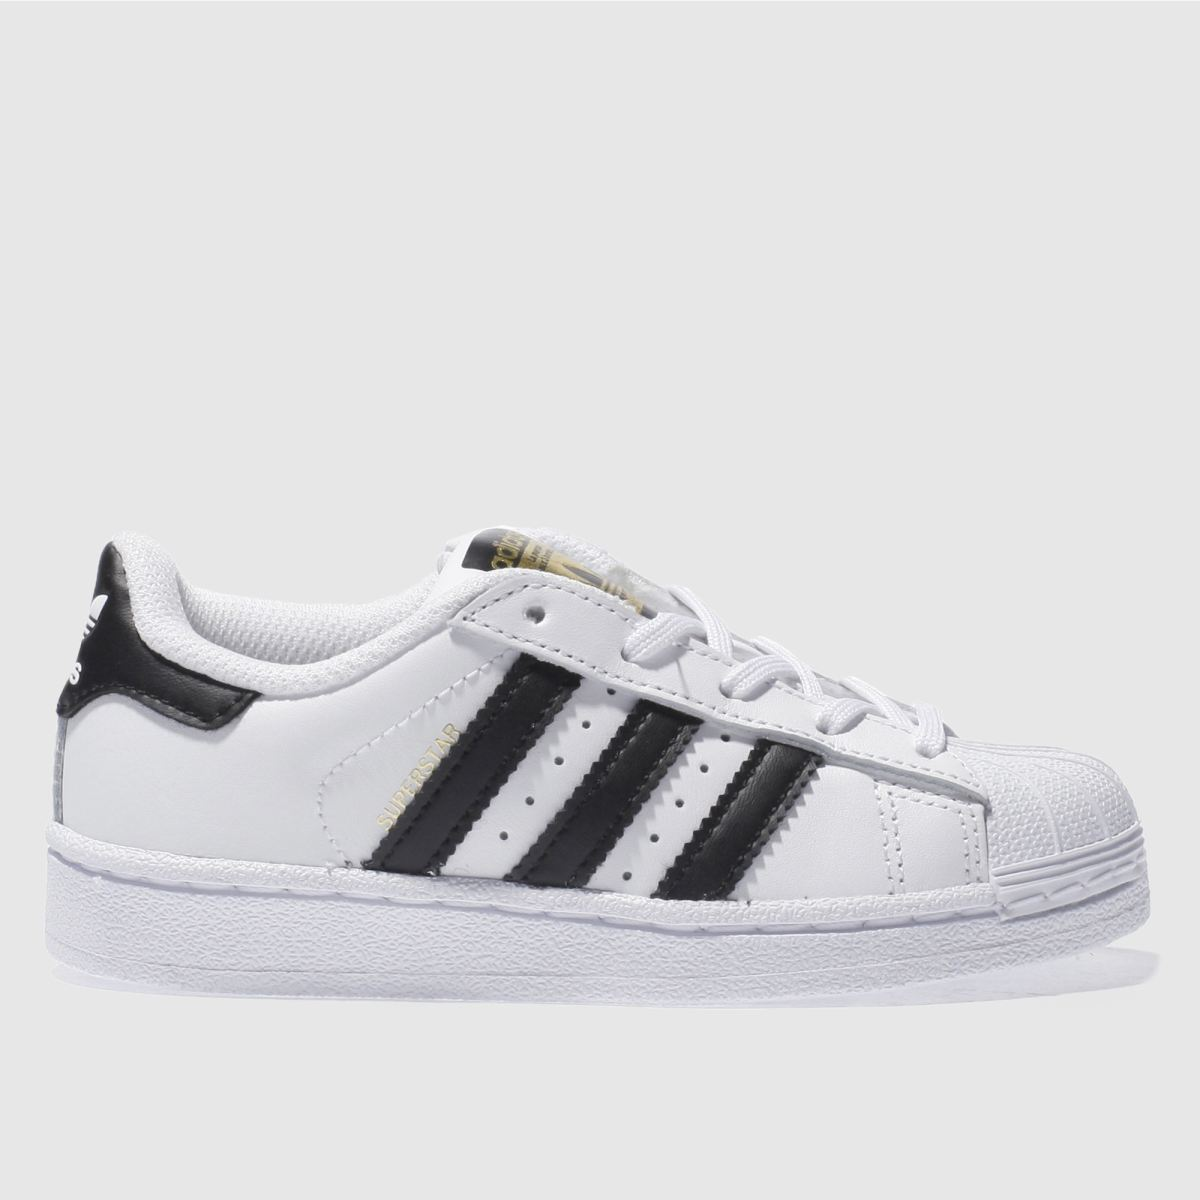 image: adidas superstar [24]